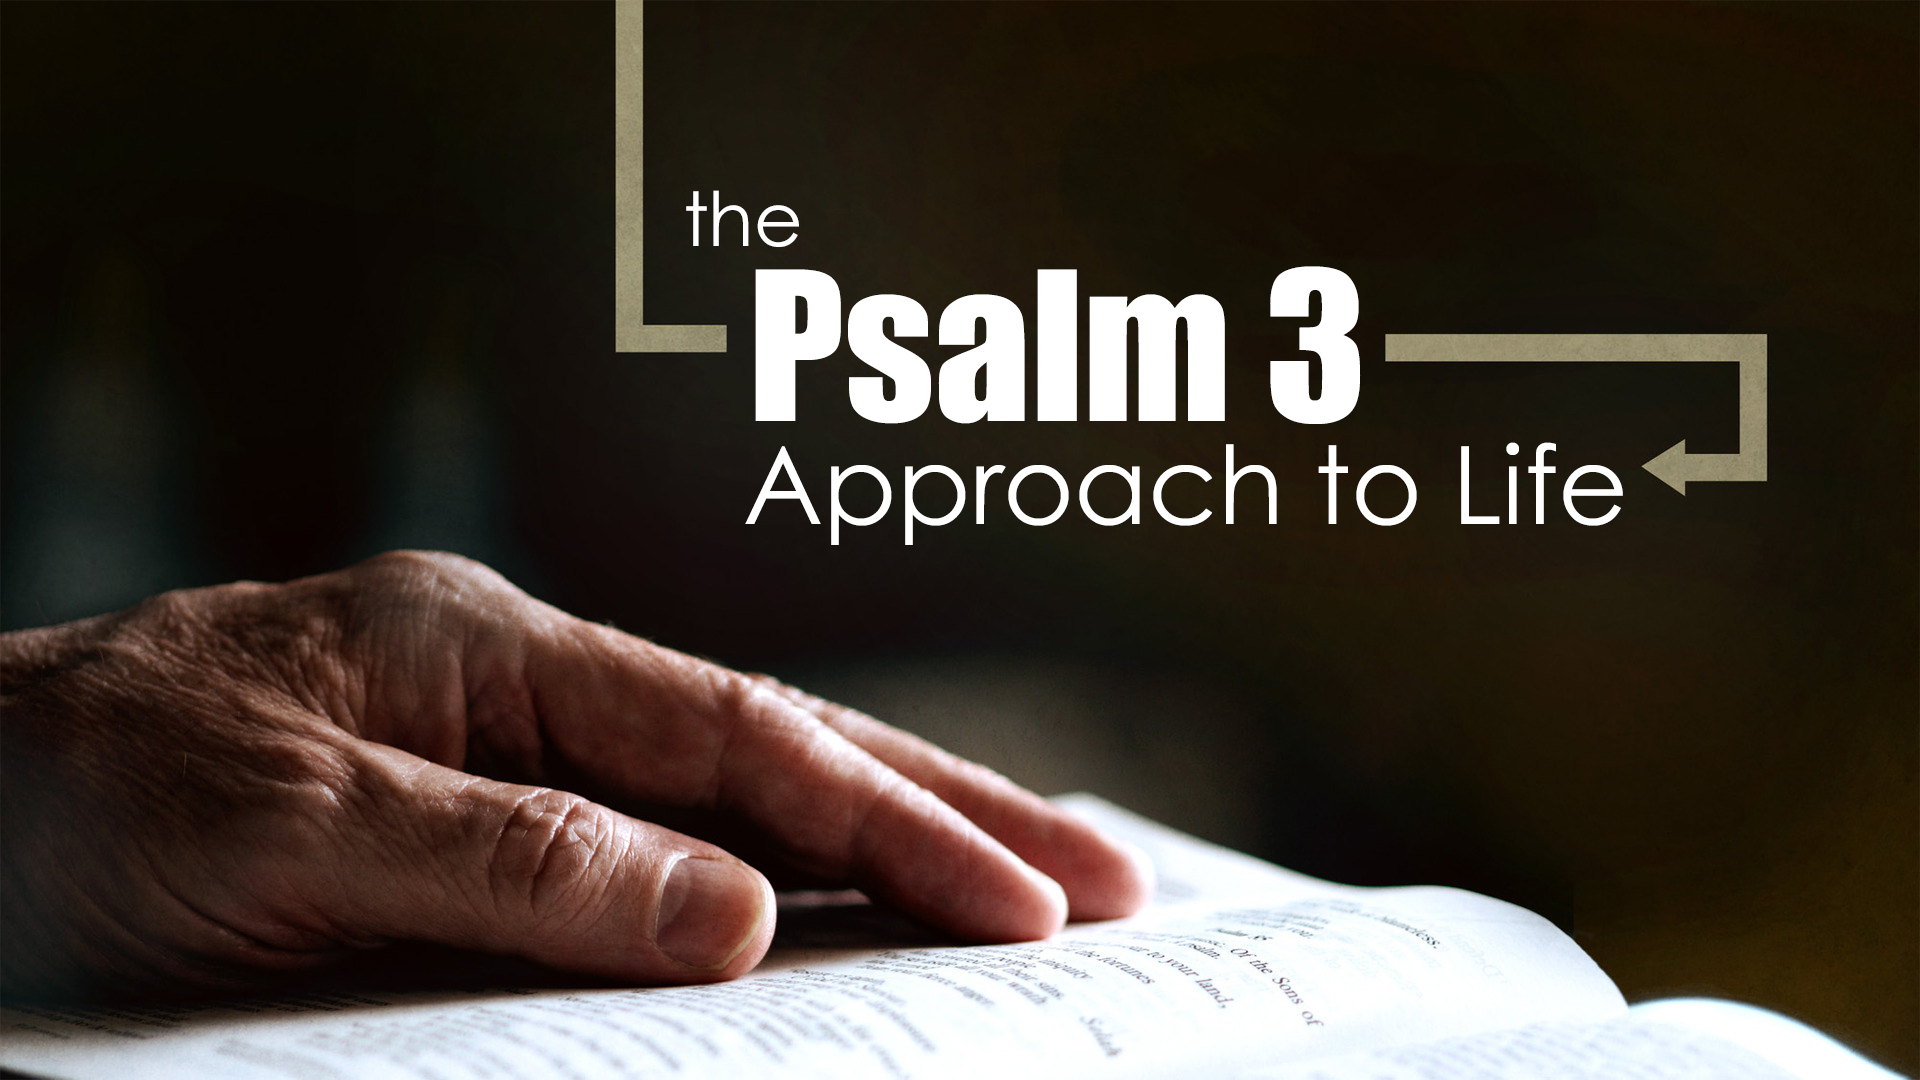 The Psalm 3 Approach to Life – In God's Image